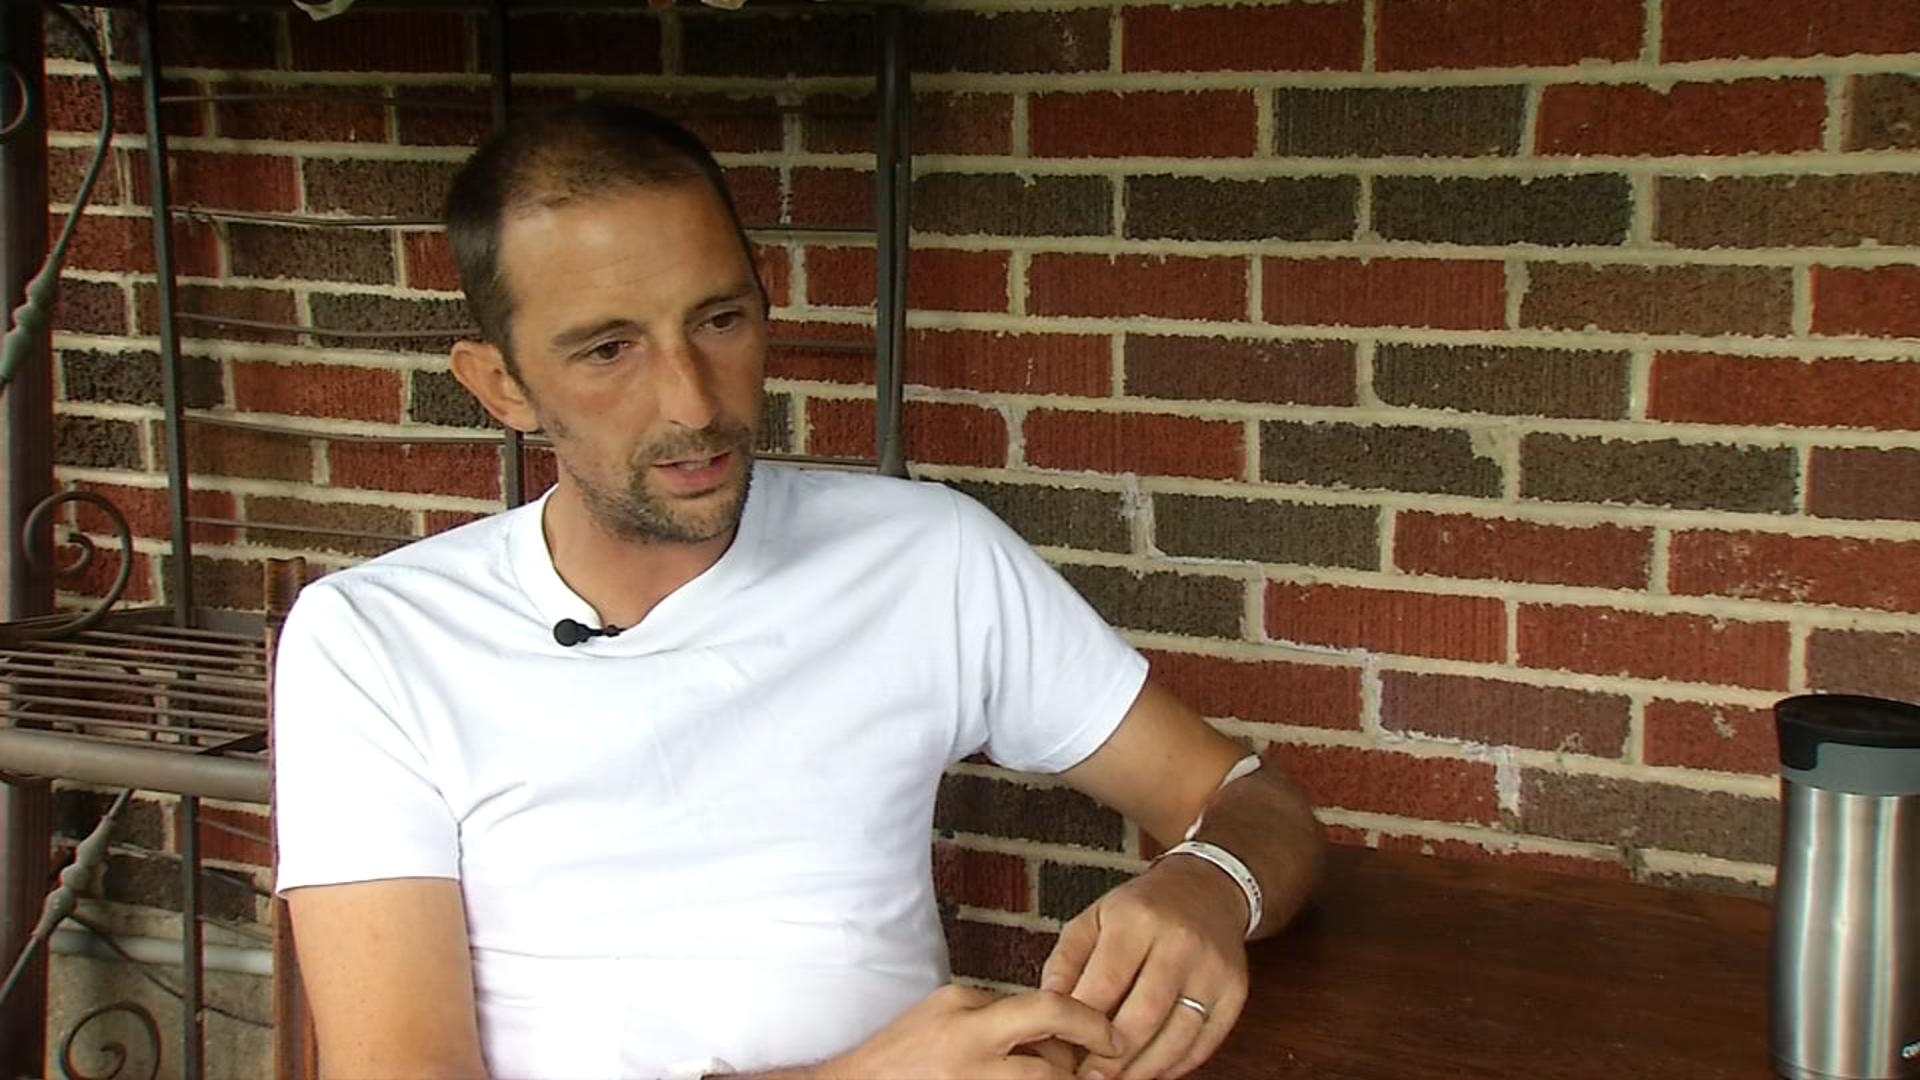 Andy Grimm of the New Carlisle News speaks to FOX 45 exclusively after returning home from the hospital (WKEF/WRGT)